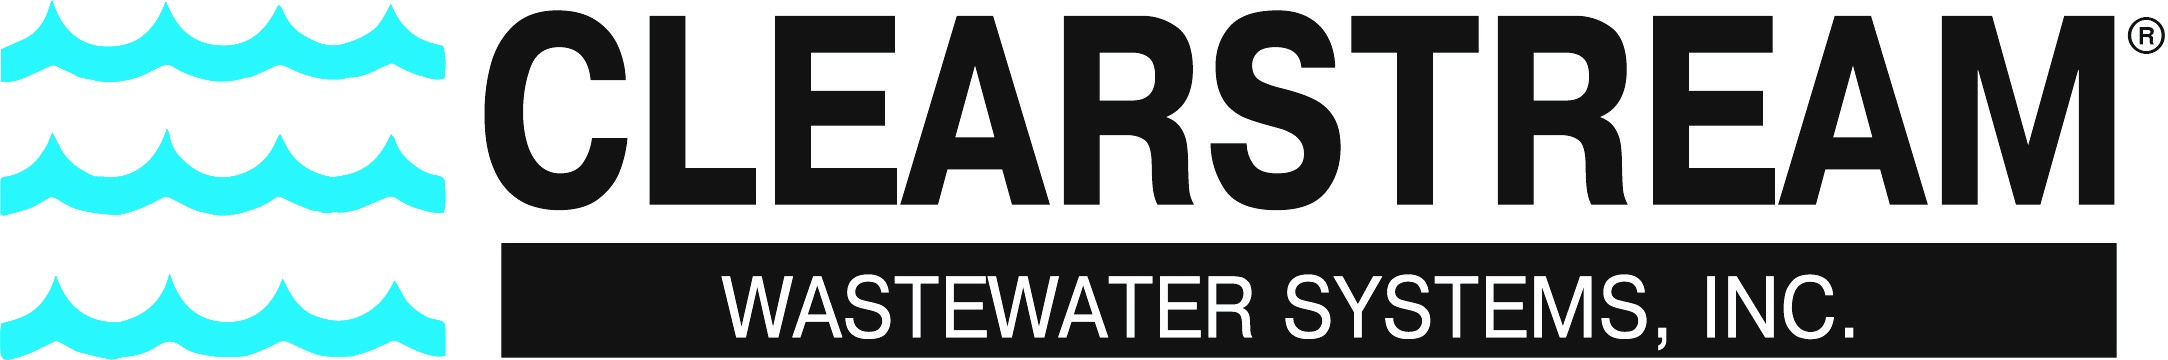 Clearstream Wastewater Systems, Inc.